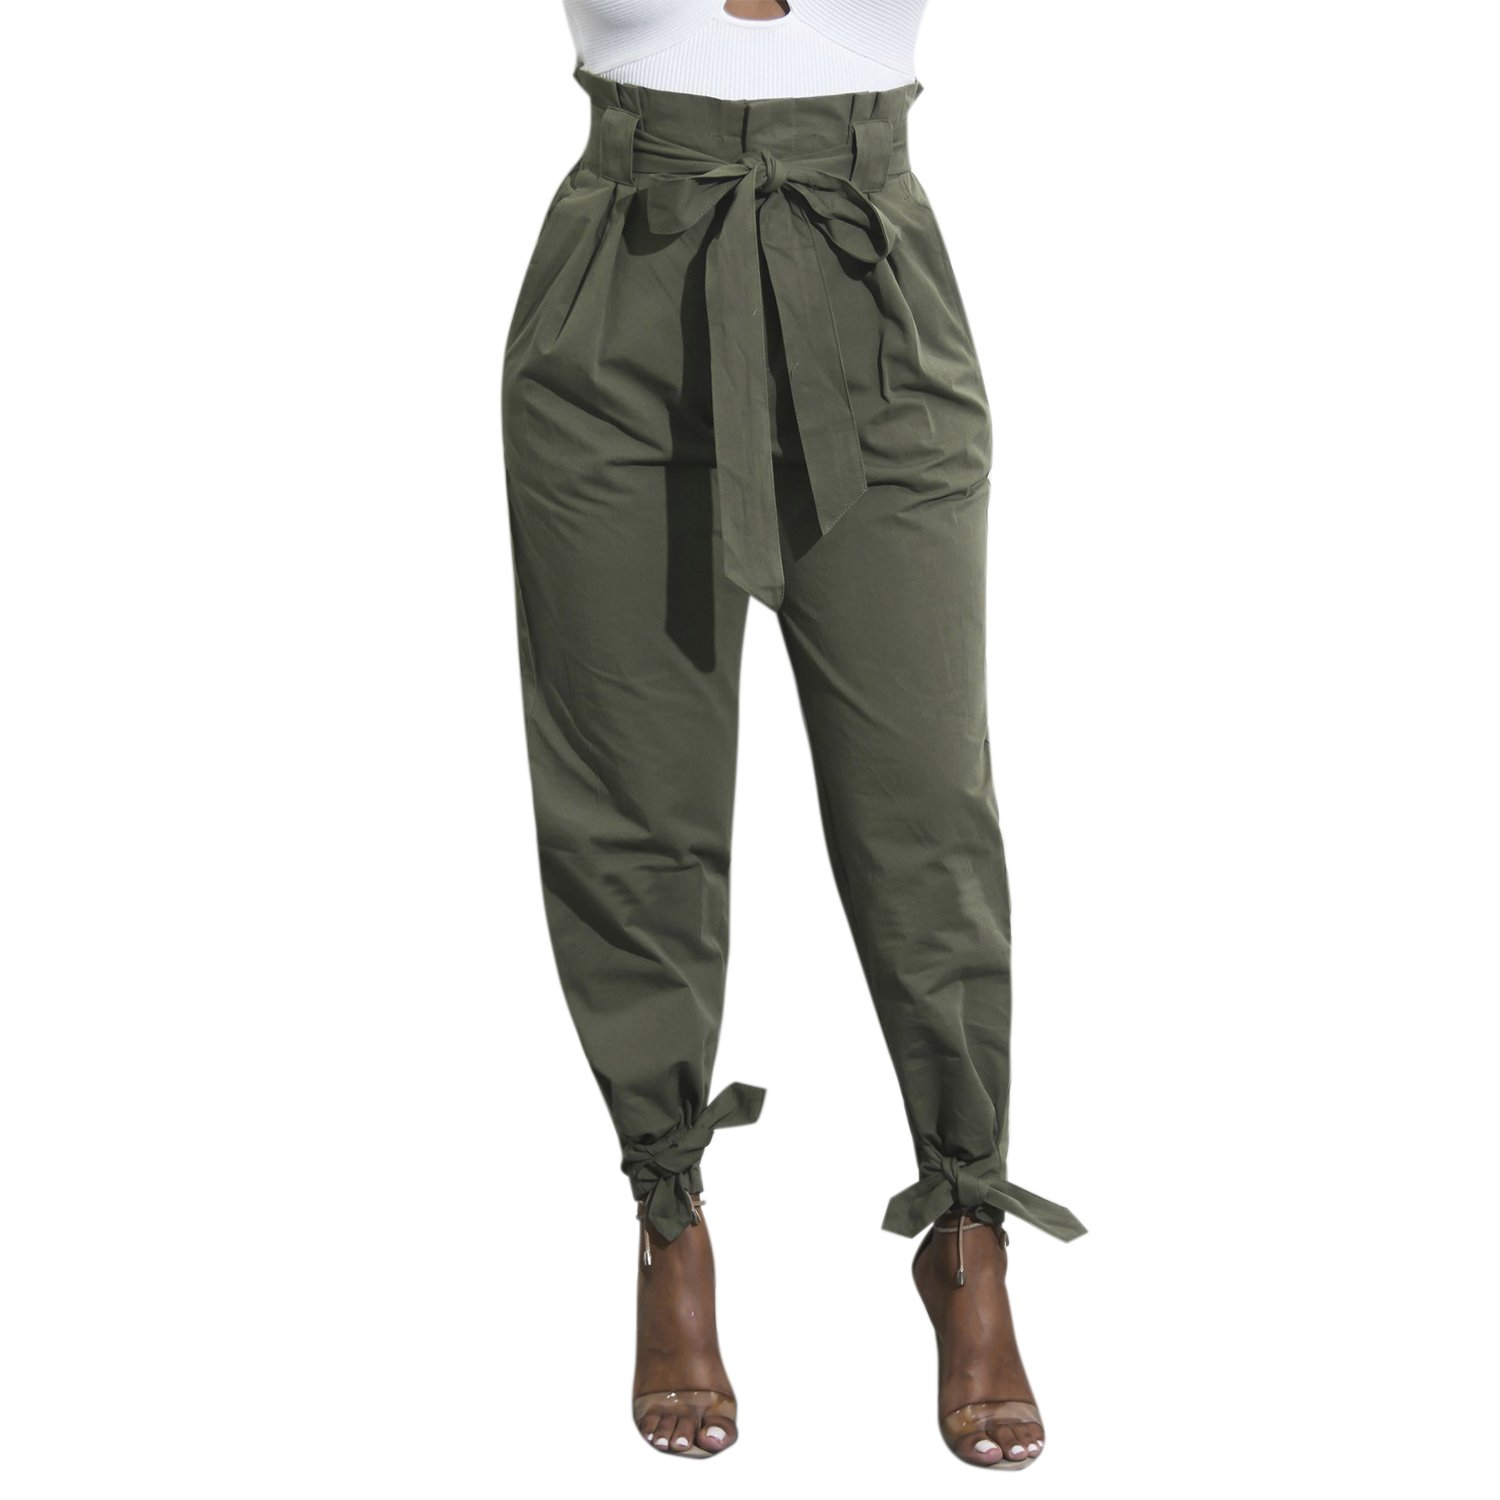 Lisli Women Casual Pants Long Style Bow Tie Waist Belt Angle Strecthy Wild Trouser